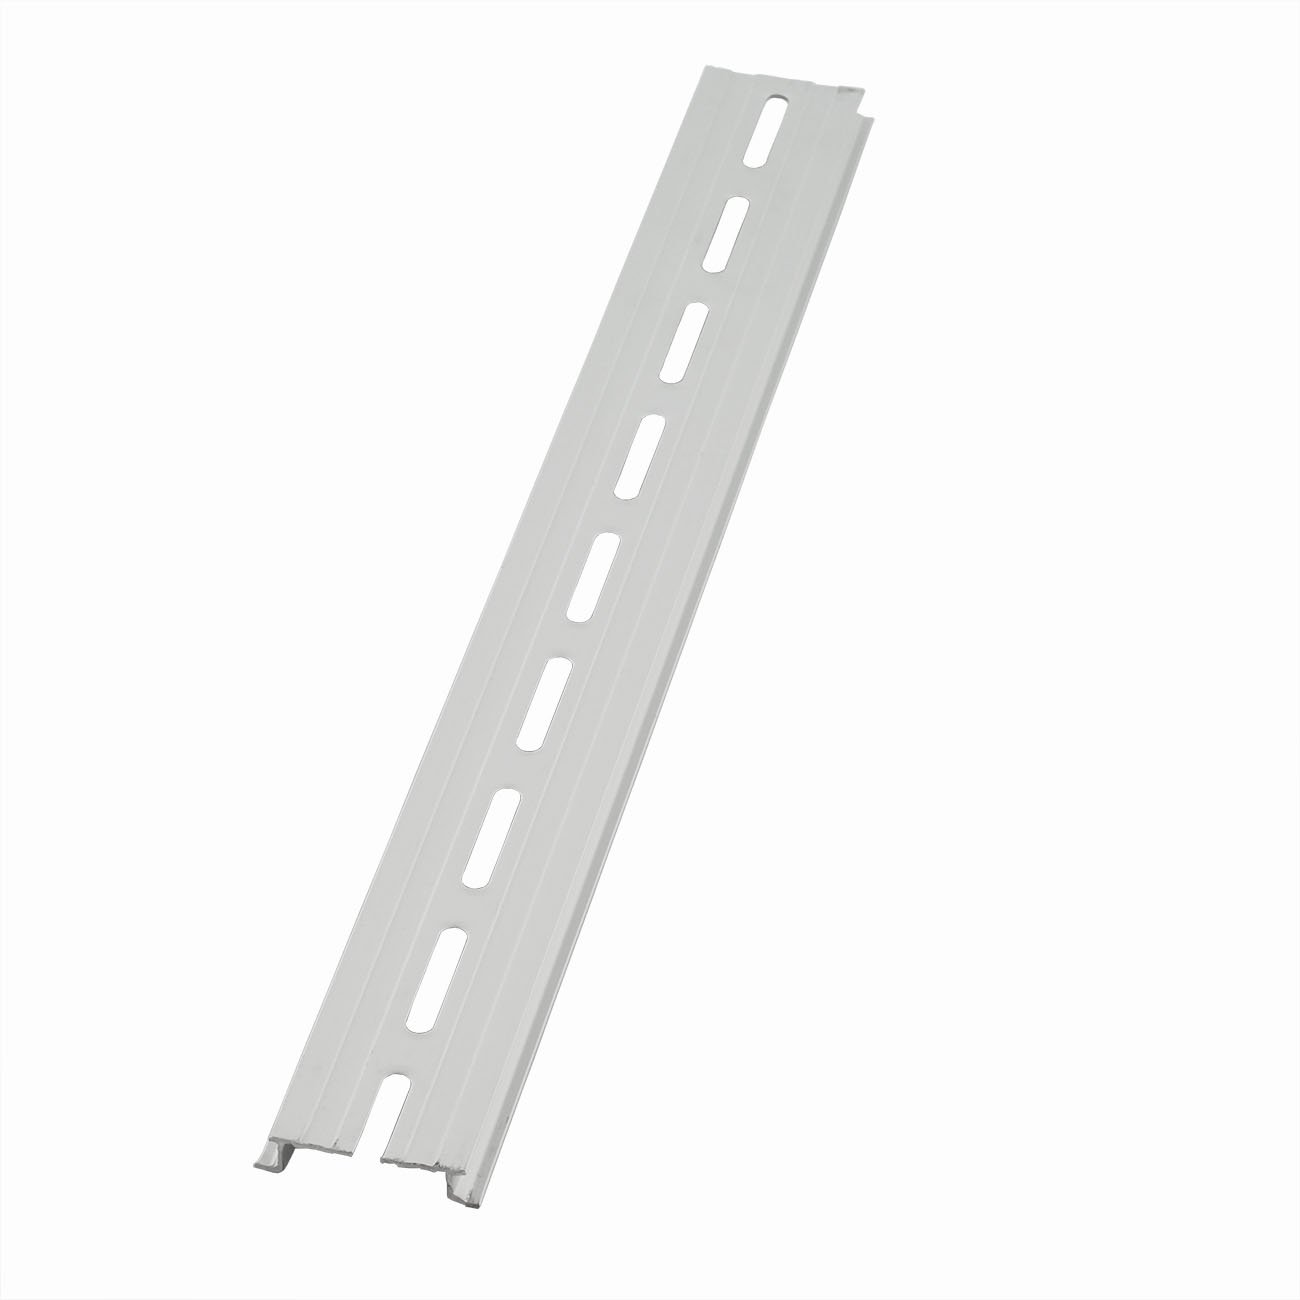 for Single Phase Switch Installing Fixed Solid State Relay PZRT 2-Pack Aluminum 1.1mm Thickness Slotted DIN Rail,200mm 7.8 Length 35mm Standard Width